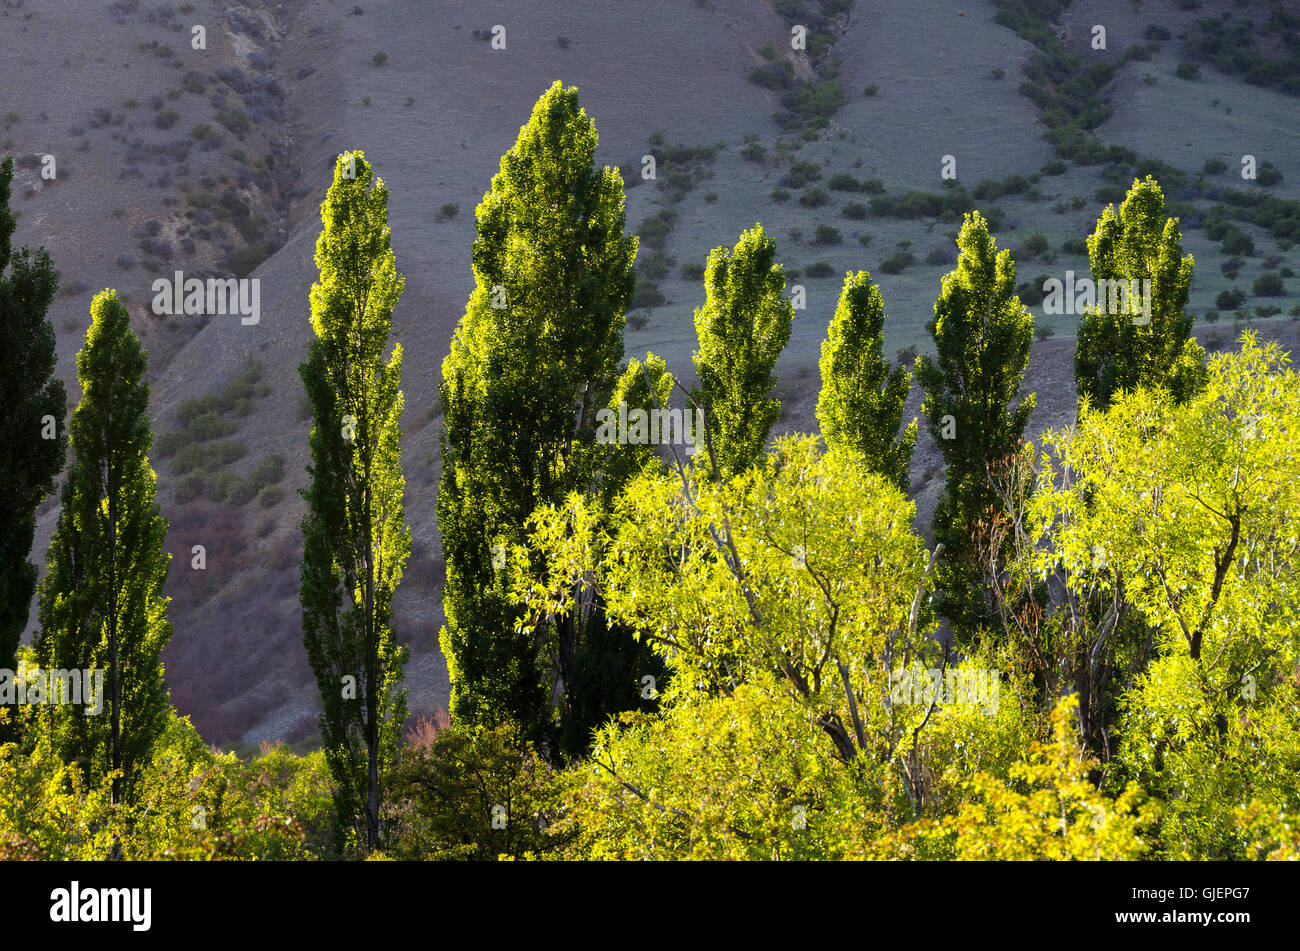 Poplar trees, Muzzle Station, Clarence River, South Island, New Zealand - Stock Image